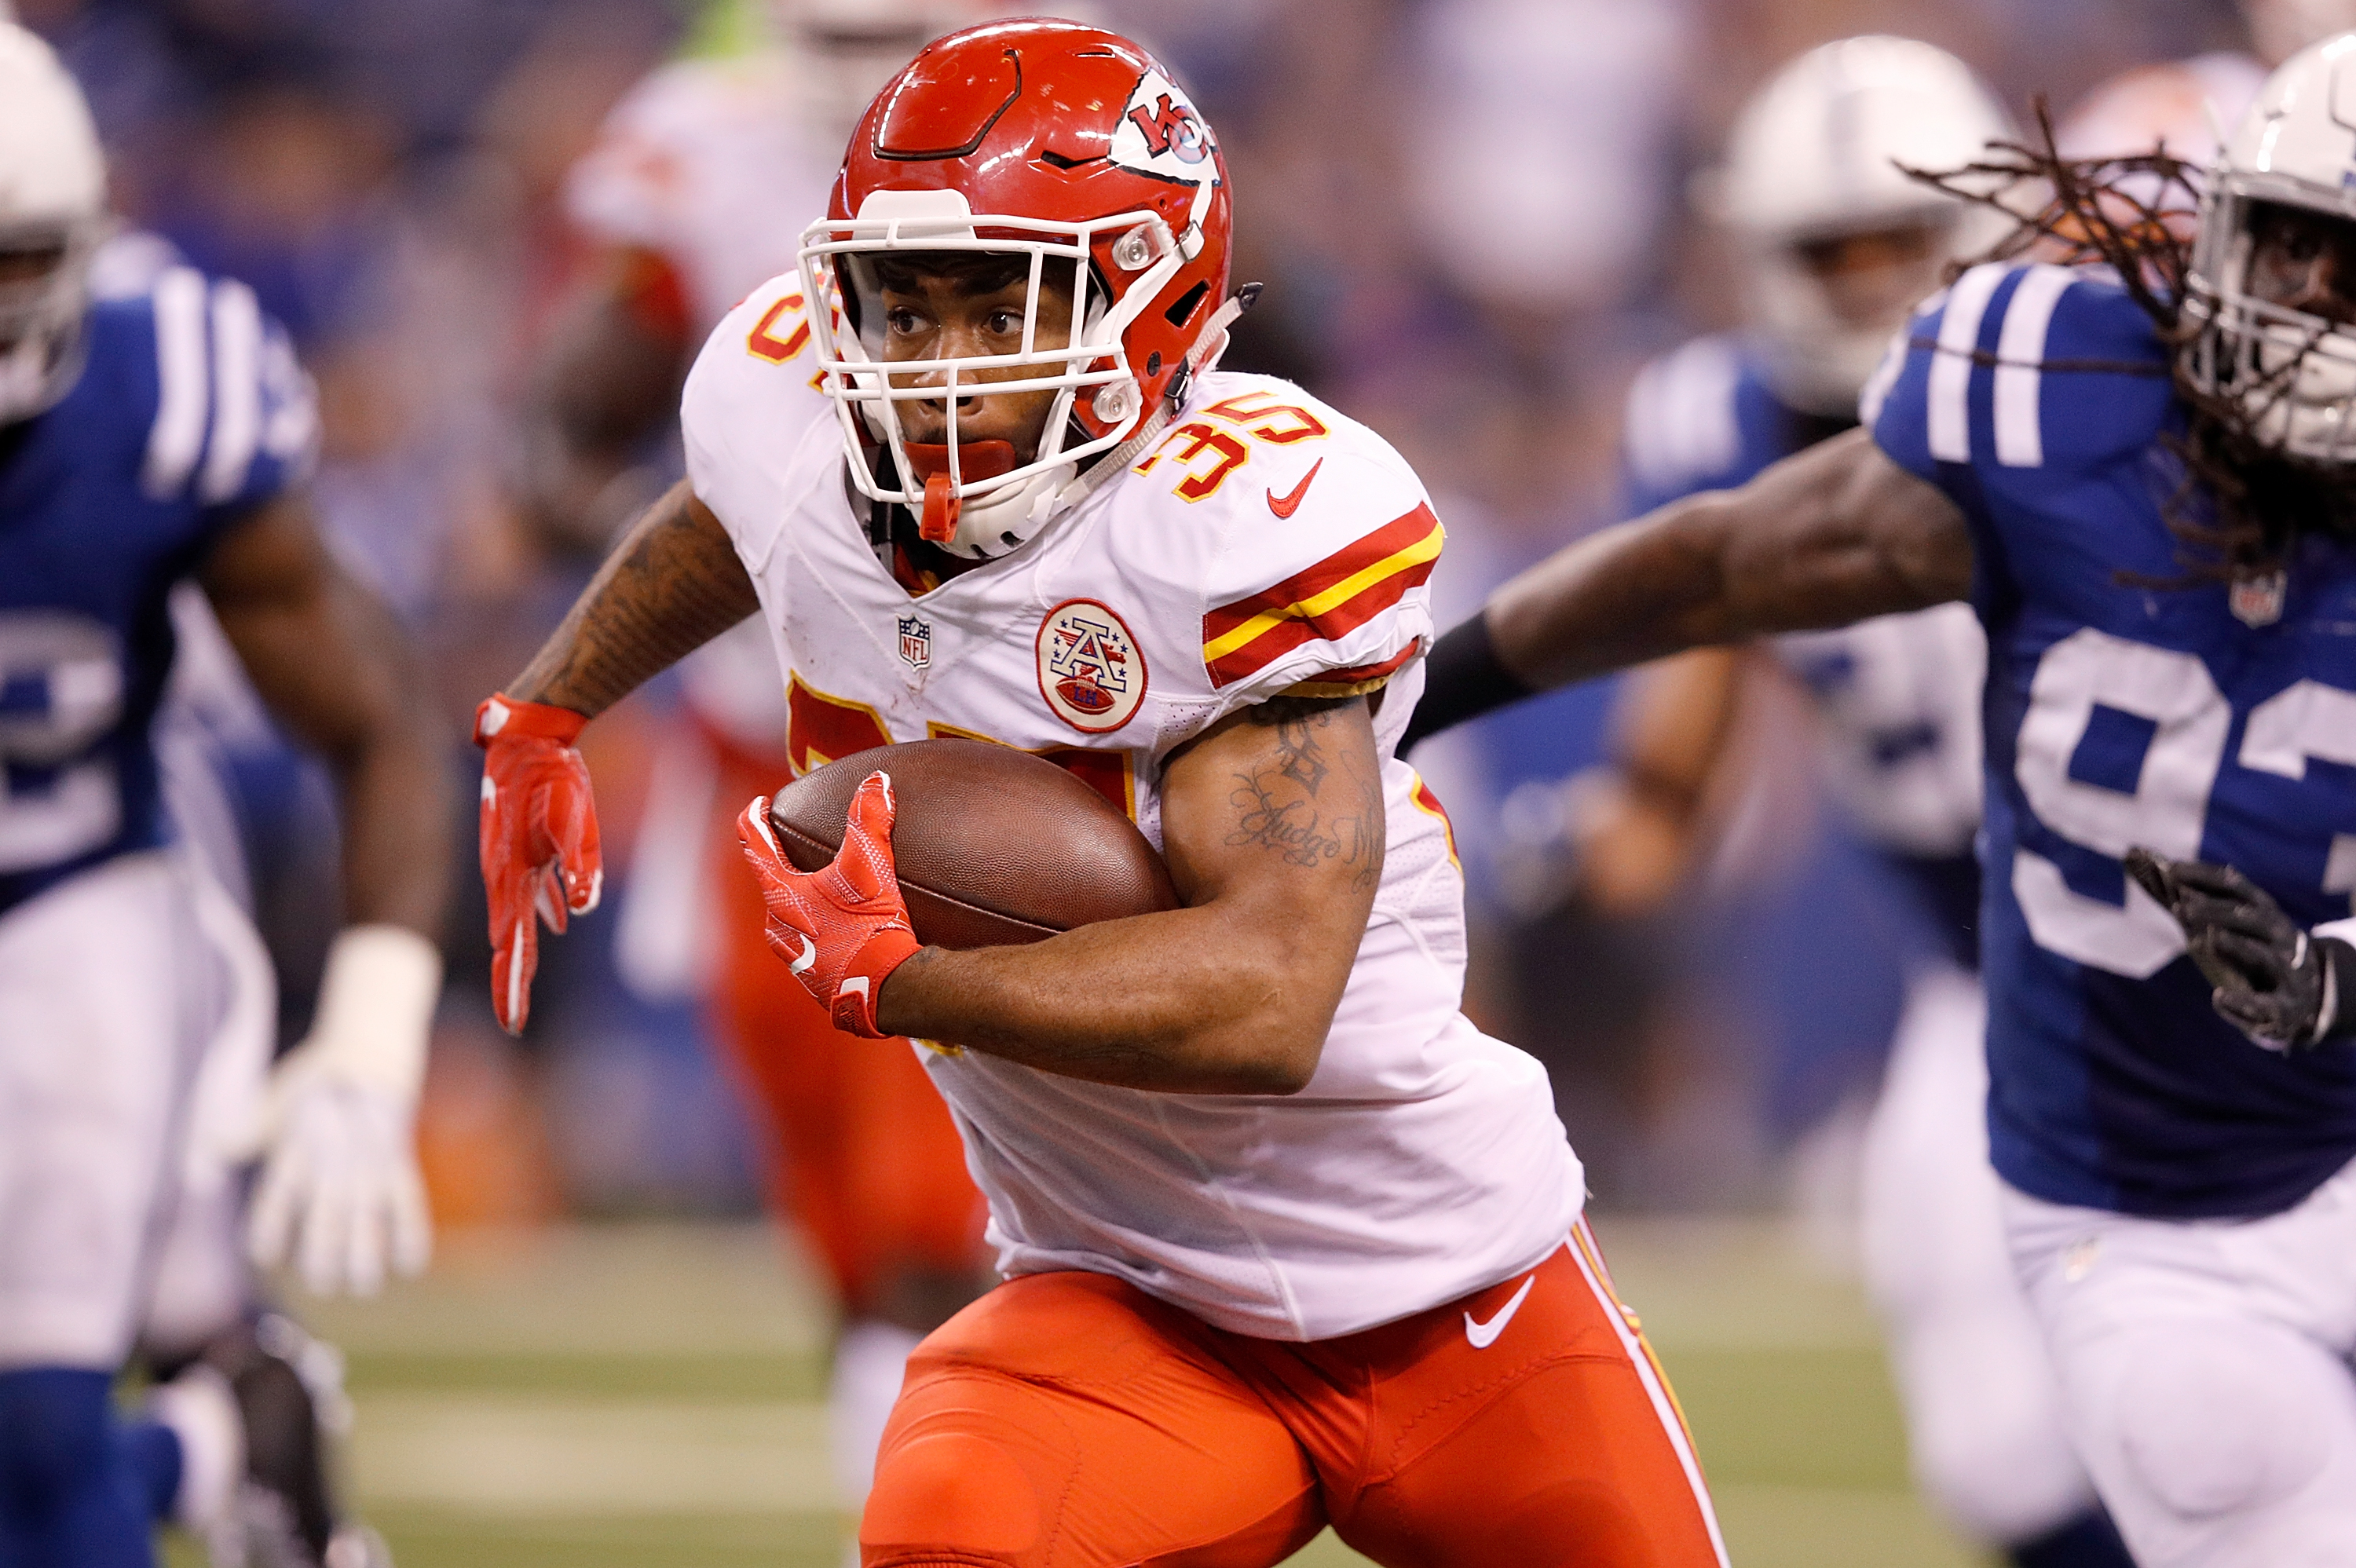 INDIANAPOLIS, IN - OCTOBER 30: Charcandrick West #35 of the Kansas City Chiefs runs with the ball during the game against the Indianapolis Colts at Lucas Oil Stadium on October 30, 2016 in Indianapolis, Indiana. (Photo by Joe Robbins/Getty Images)